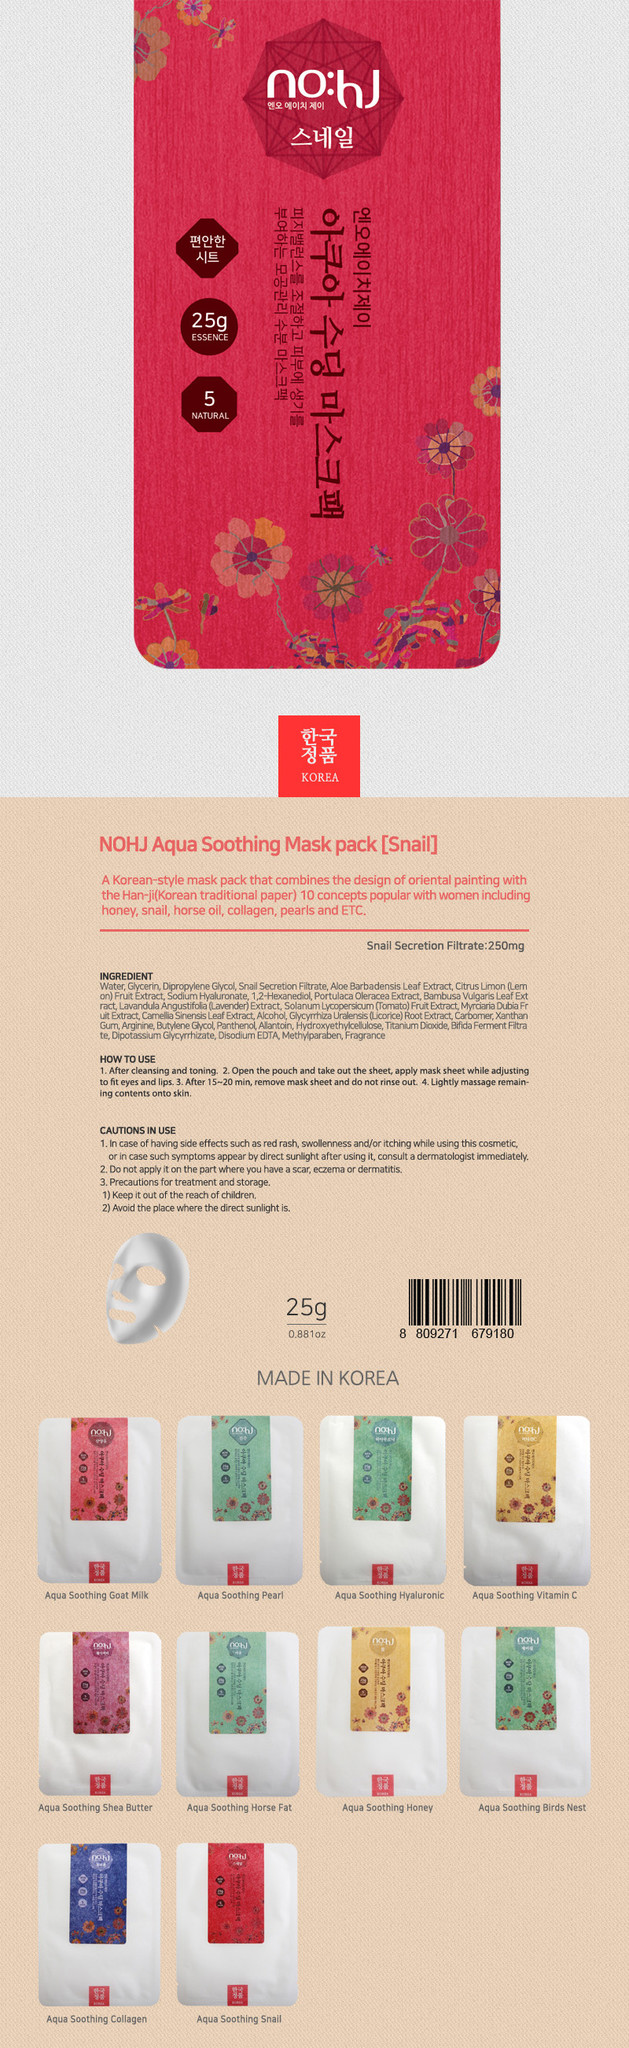 Aqua Soothing Mask pack [Snail]-2